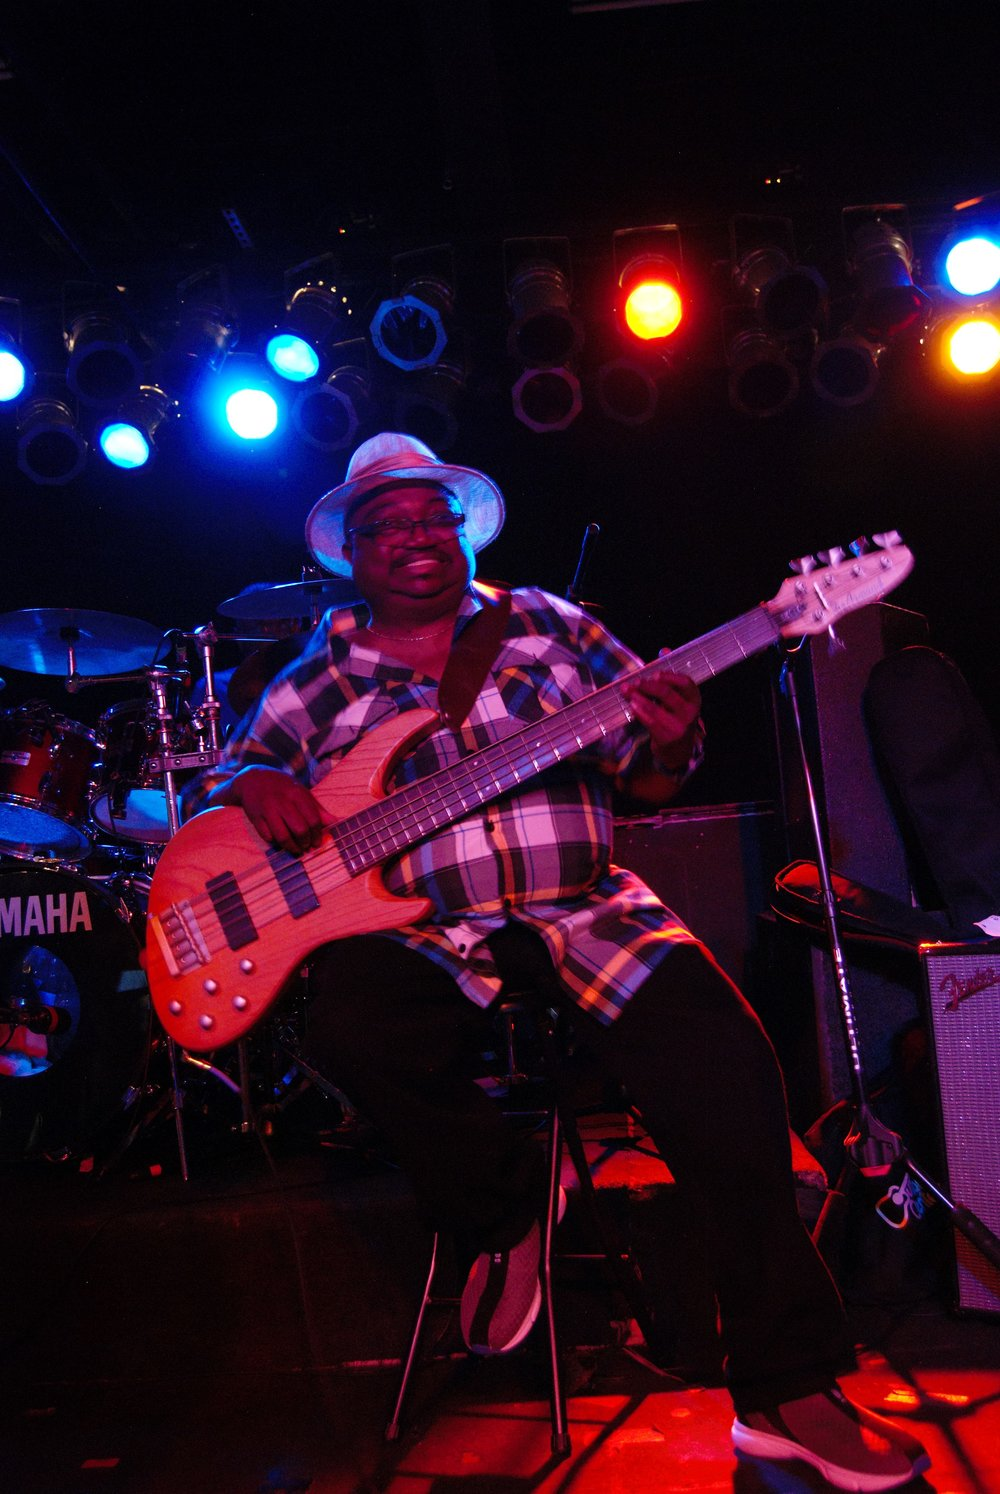 Andre Gilmore - Bassist, André Gilmore, is the founder and CEO of Code Sweat since its conception in 2007. This Chicago native started his career with the band Magic Mist in 1975, and went on with other groups such as Miki Lewis & Startime and Cash & Carry. André has had the honor to play alongside R & B greats the Staple Singers, and as part of Magic Mist, with Teddy Pendergrass, SOS Band, the Isley Brothers, Curtis Blow, the Emotions, Denise Williams, and the Godfather of Soul, James Brown (1980). His influences as a bass player include Larry Graham (Graham Central Station), Bootsie Collins, Verden White (Earth, Wind & Fire), but include other musicians such as Jimmy McGriff, Gene Ammonds, James Brown, and legendary singer Lou Rawls. But the biggest influence in André's musical involvement was his father, Harold Gilmore, a percussionist who sat in with other Chicago area musicians during the 1950s and 60s and who started him and his brothers to play music.